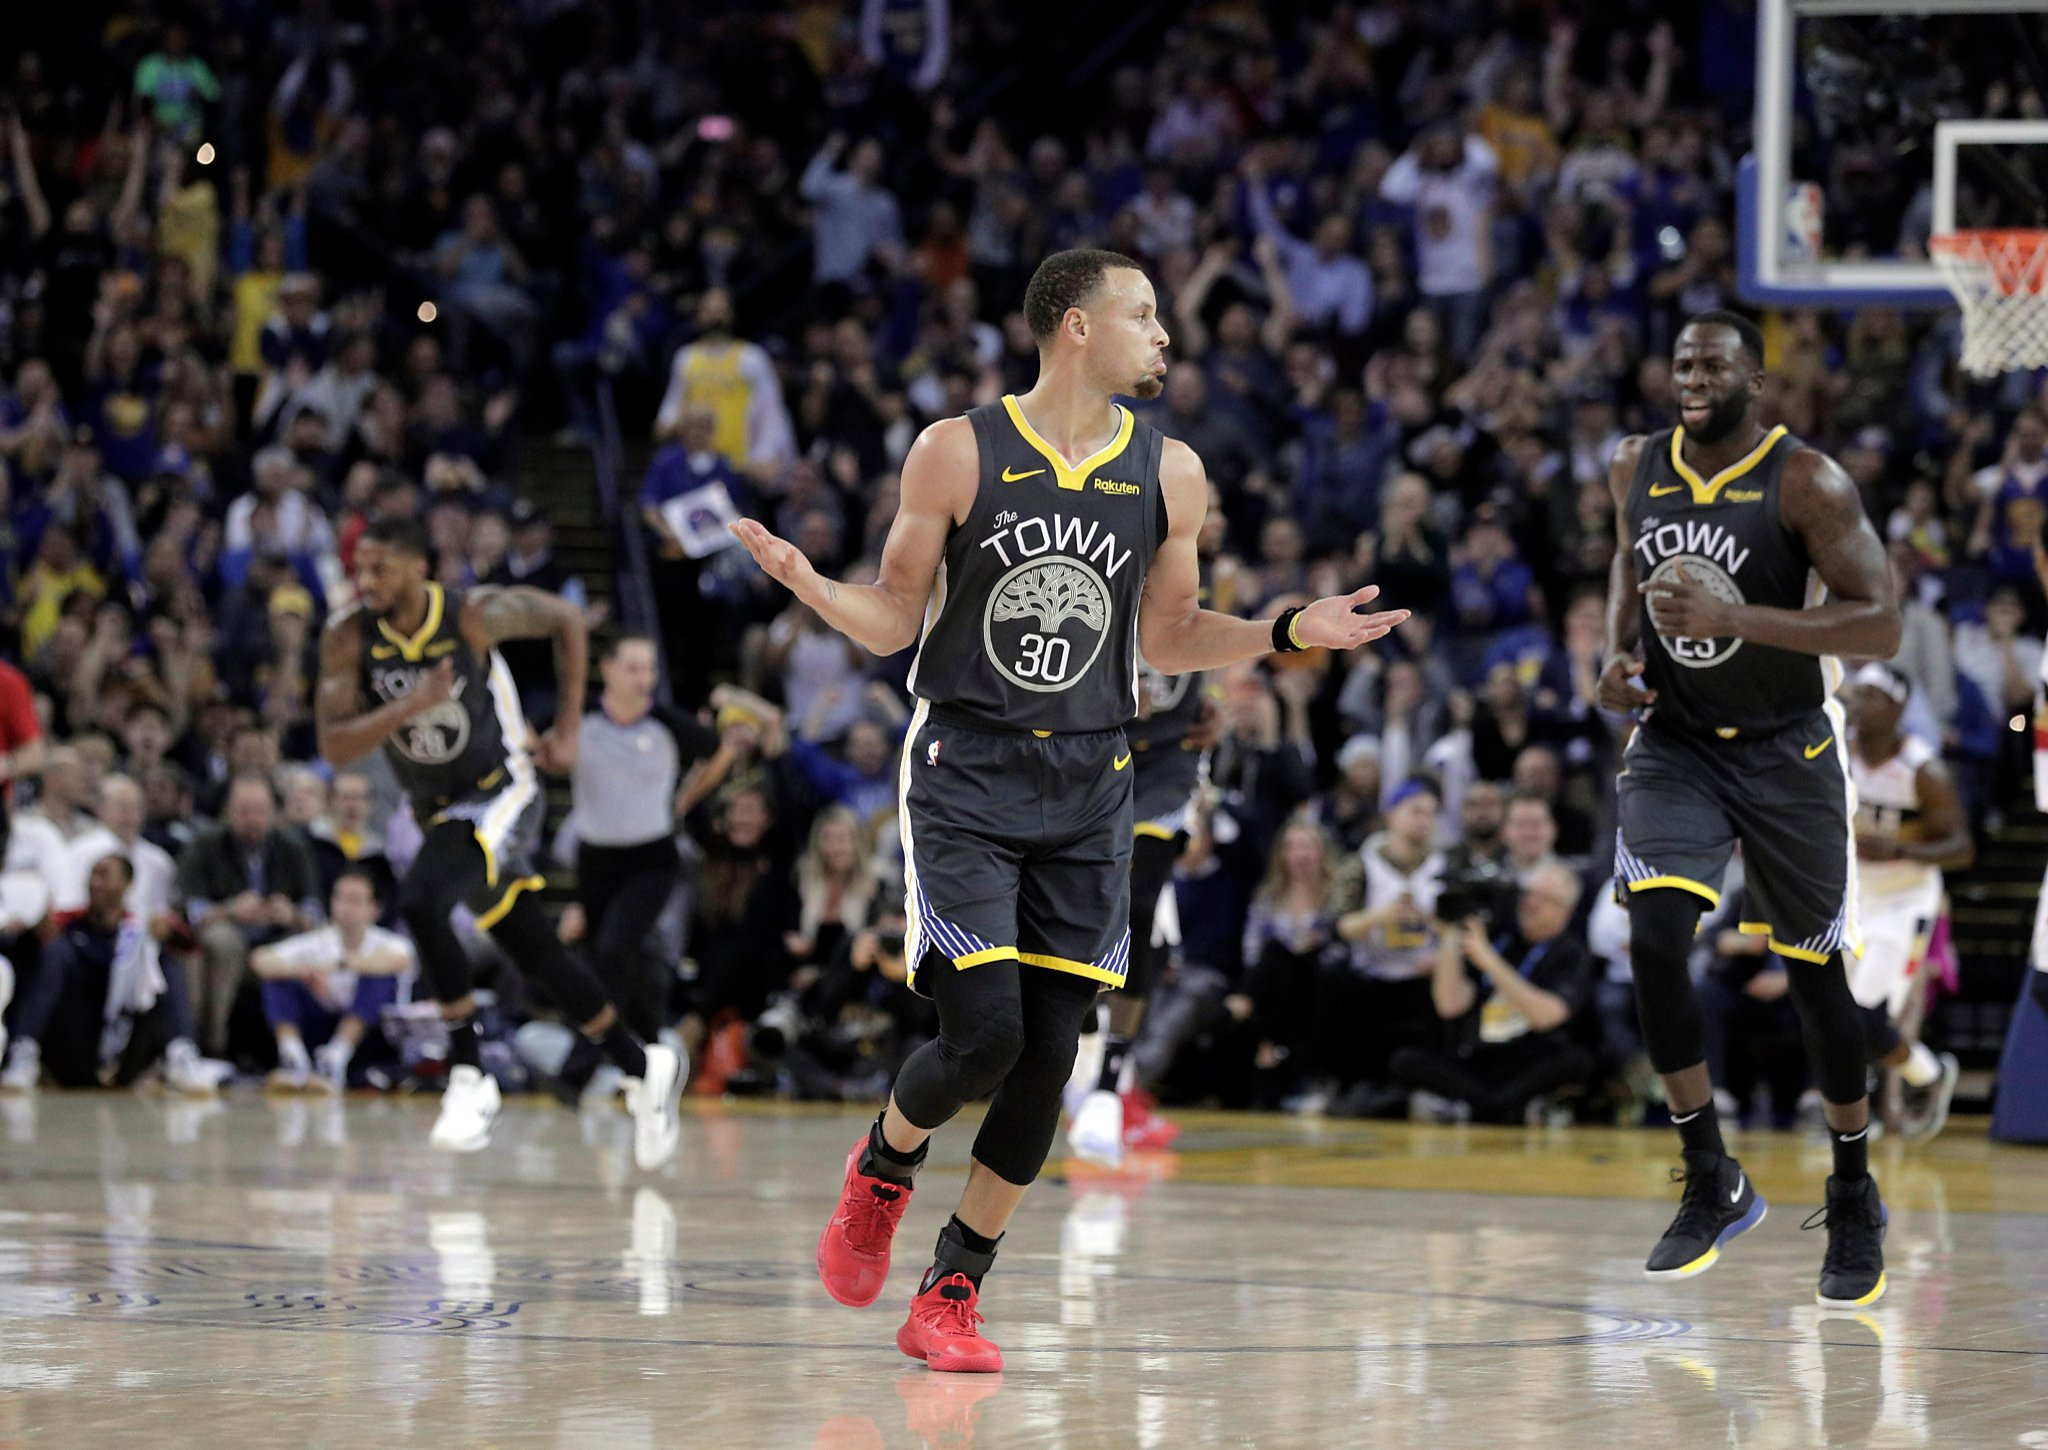 ba8420bb2 Warriors rally from big third-quarter deficit to beat Pelicans 147-140 -  SFGate